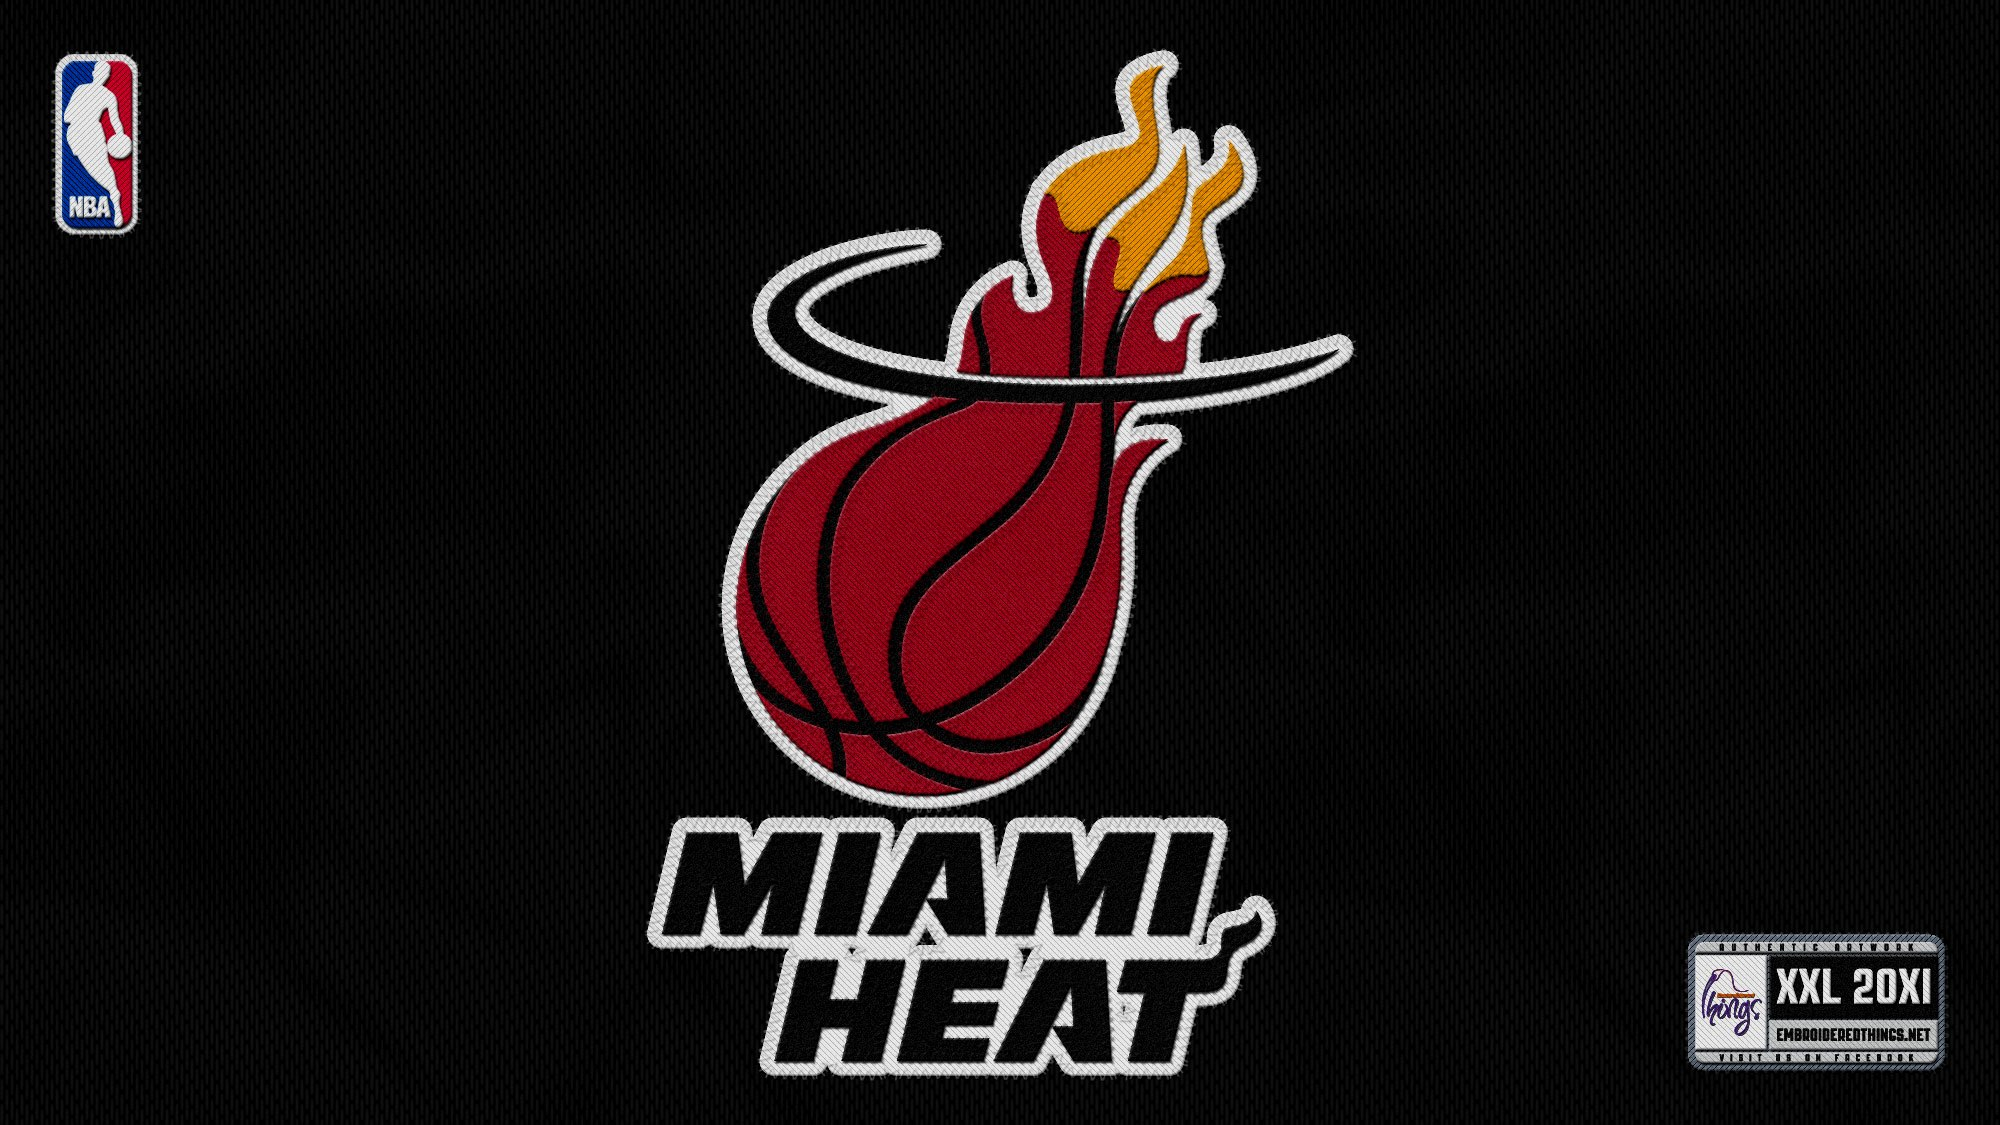 Miami Heat Wallpaper HD collection 2000x1125